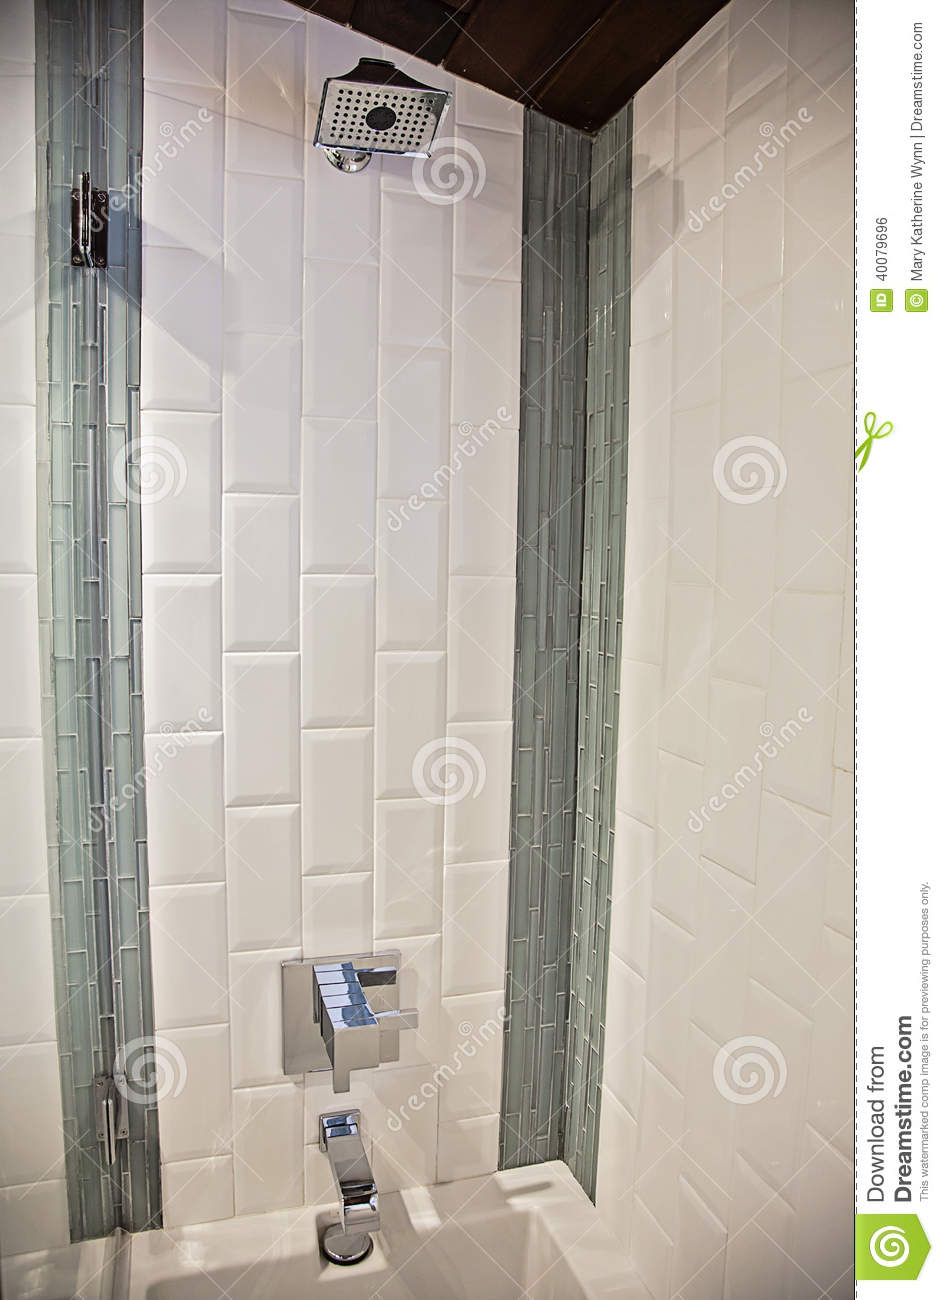 Perfect Modern bathroom tile stock photo. Image of tile, linear - 40079696 GR76